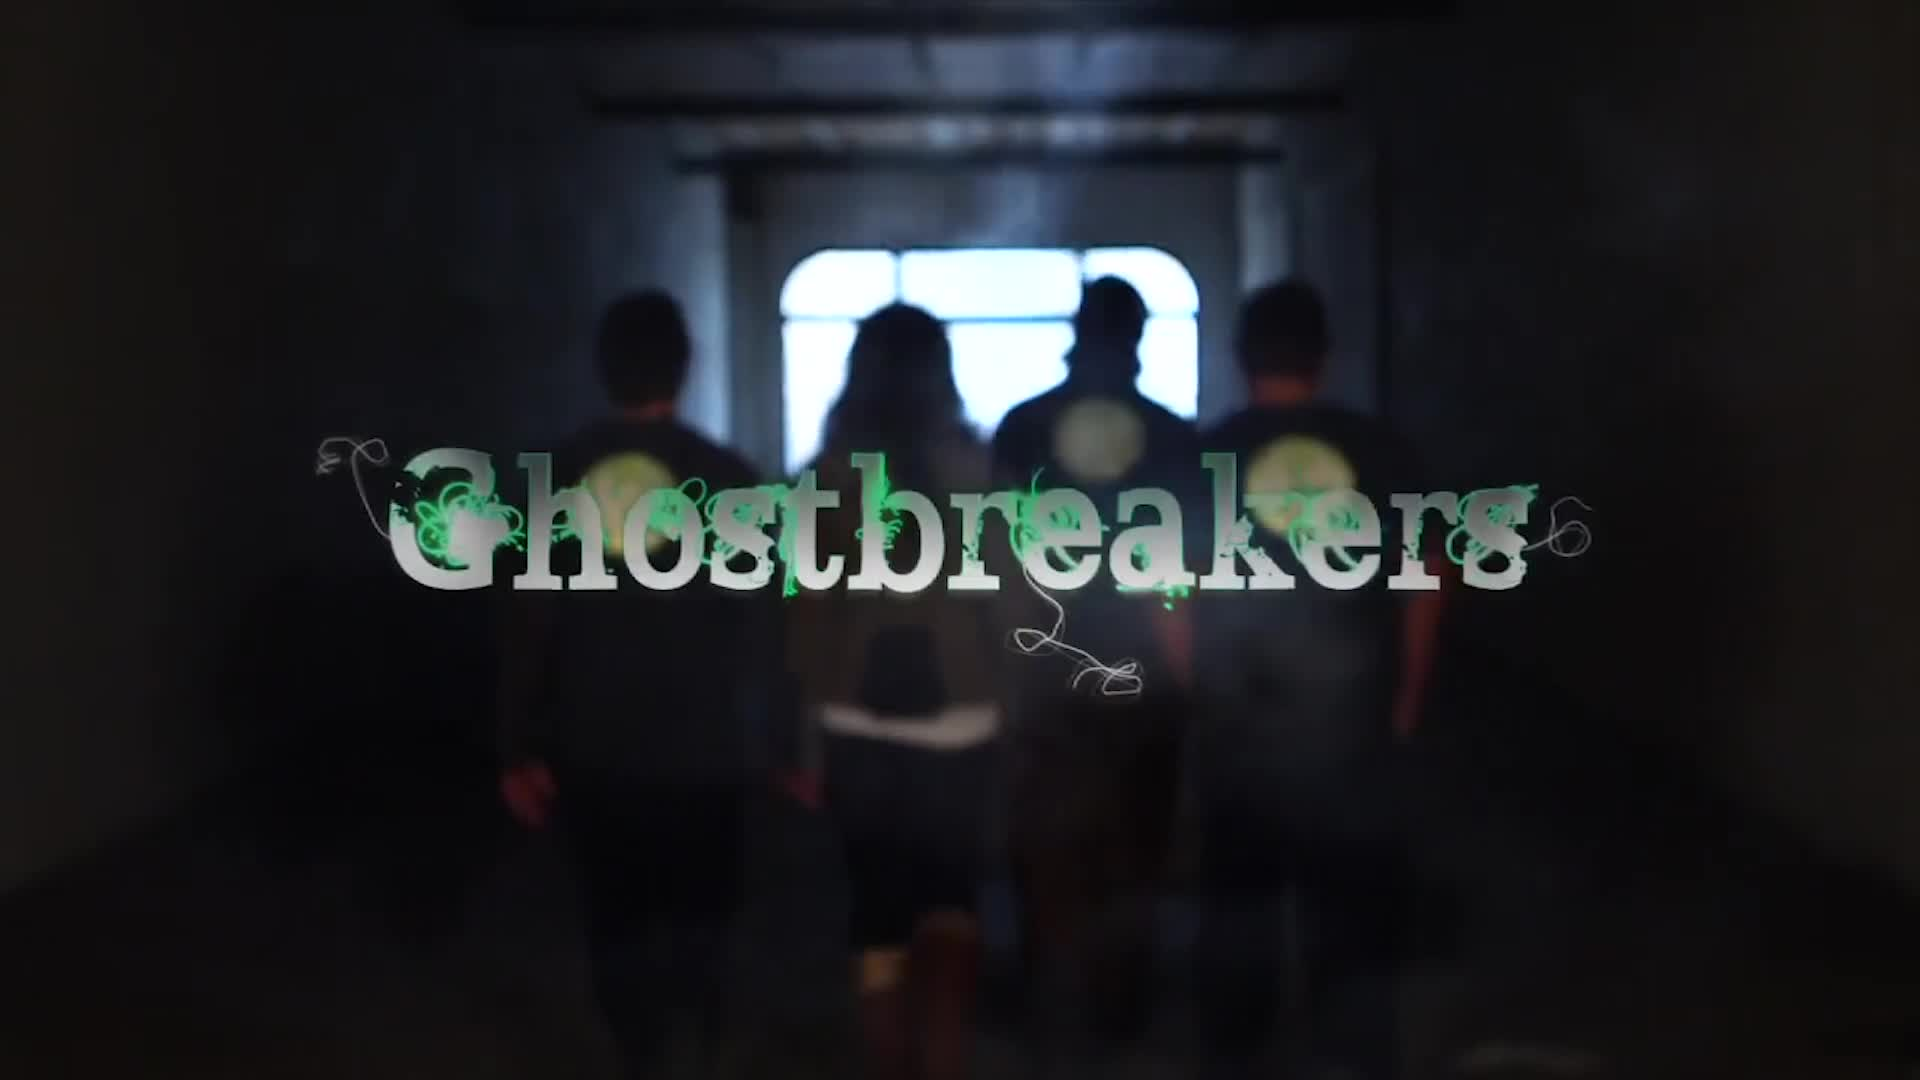 Ghostbreakers dubbed italian movie free download torrent